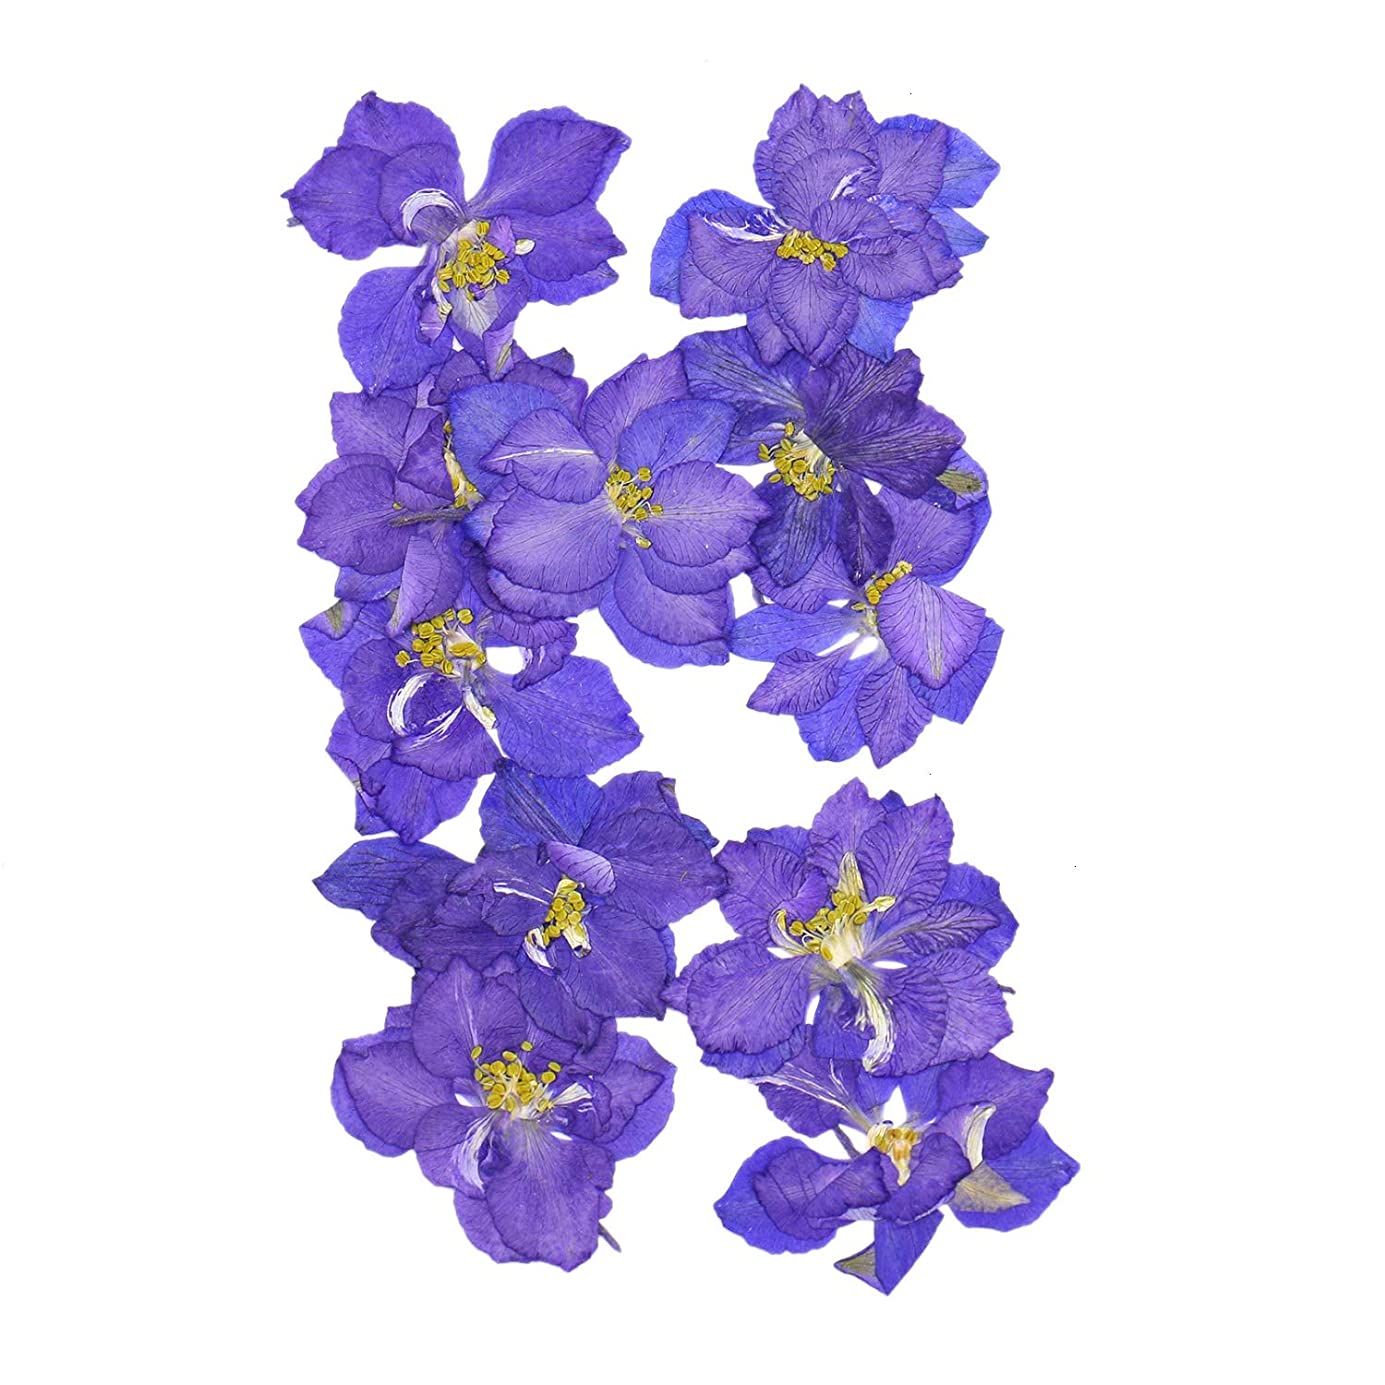 Monrocco 20Pcs Real Larkspur Dried Flowers Pressed Flowers DIY Preserved Flower Decorations nmceoo0797